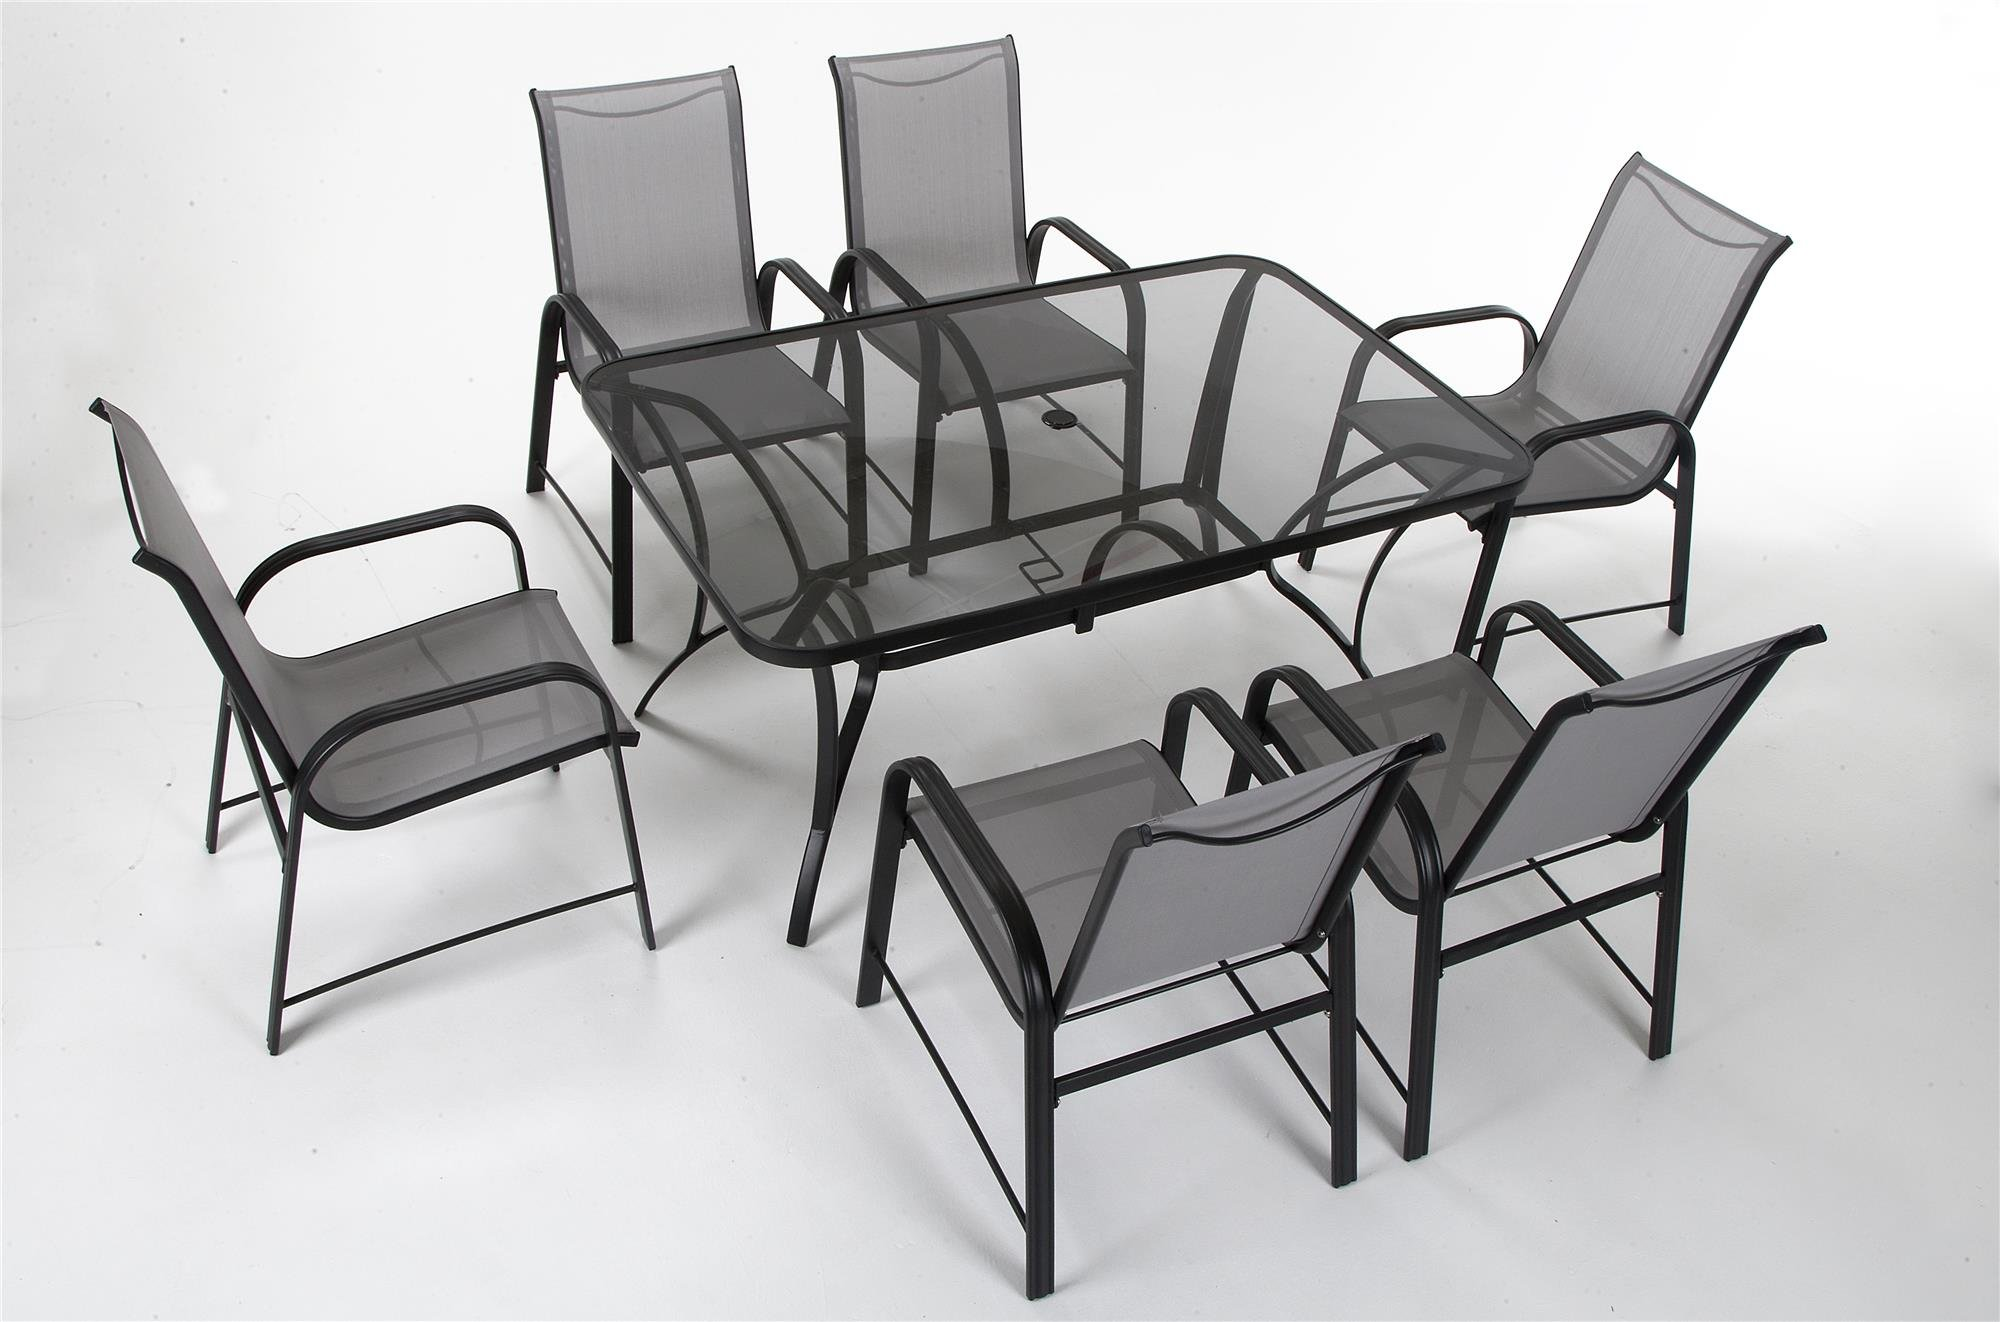 """COSCO 88645GLGE Outdoor Living Paloma Steel Patio Dining Chairs, 6-Pack, Light/Drak Gray - Cosco's Paloma collection outdoor dining chairs feature an all weather sling and a durable weather resistant outdoor powder coated steel frame The dining chairs can be paired with the Paloma outdoor dining table or can match existing patio furniture Dimensions are: dining chairs 21.41"""" L x 26.57"""" W x 27.4"""" H - patio-furniture, dining-sets-patio-funiture, patio - 713jXPFr%2BiL -"""